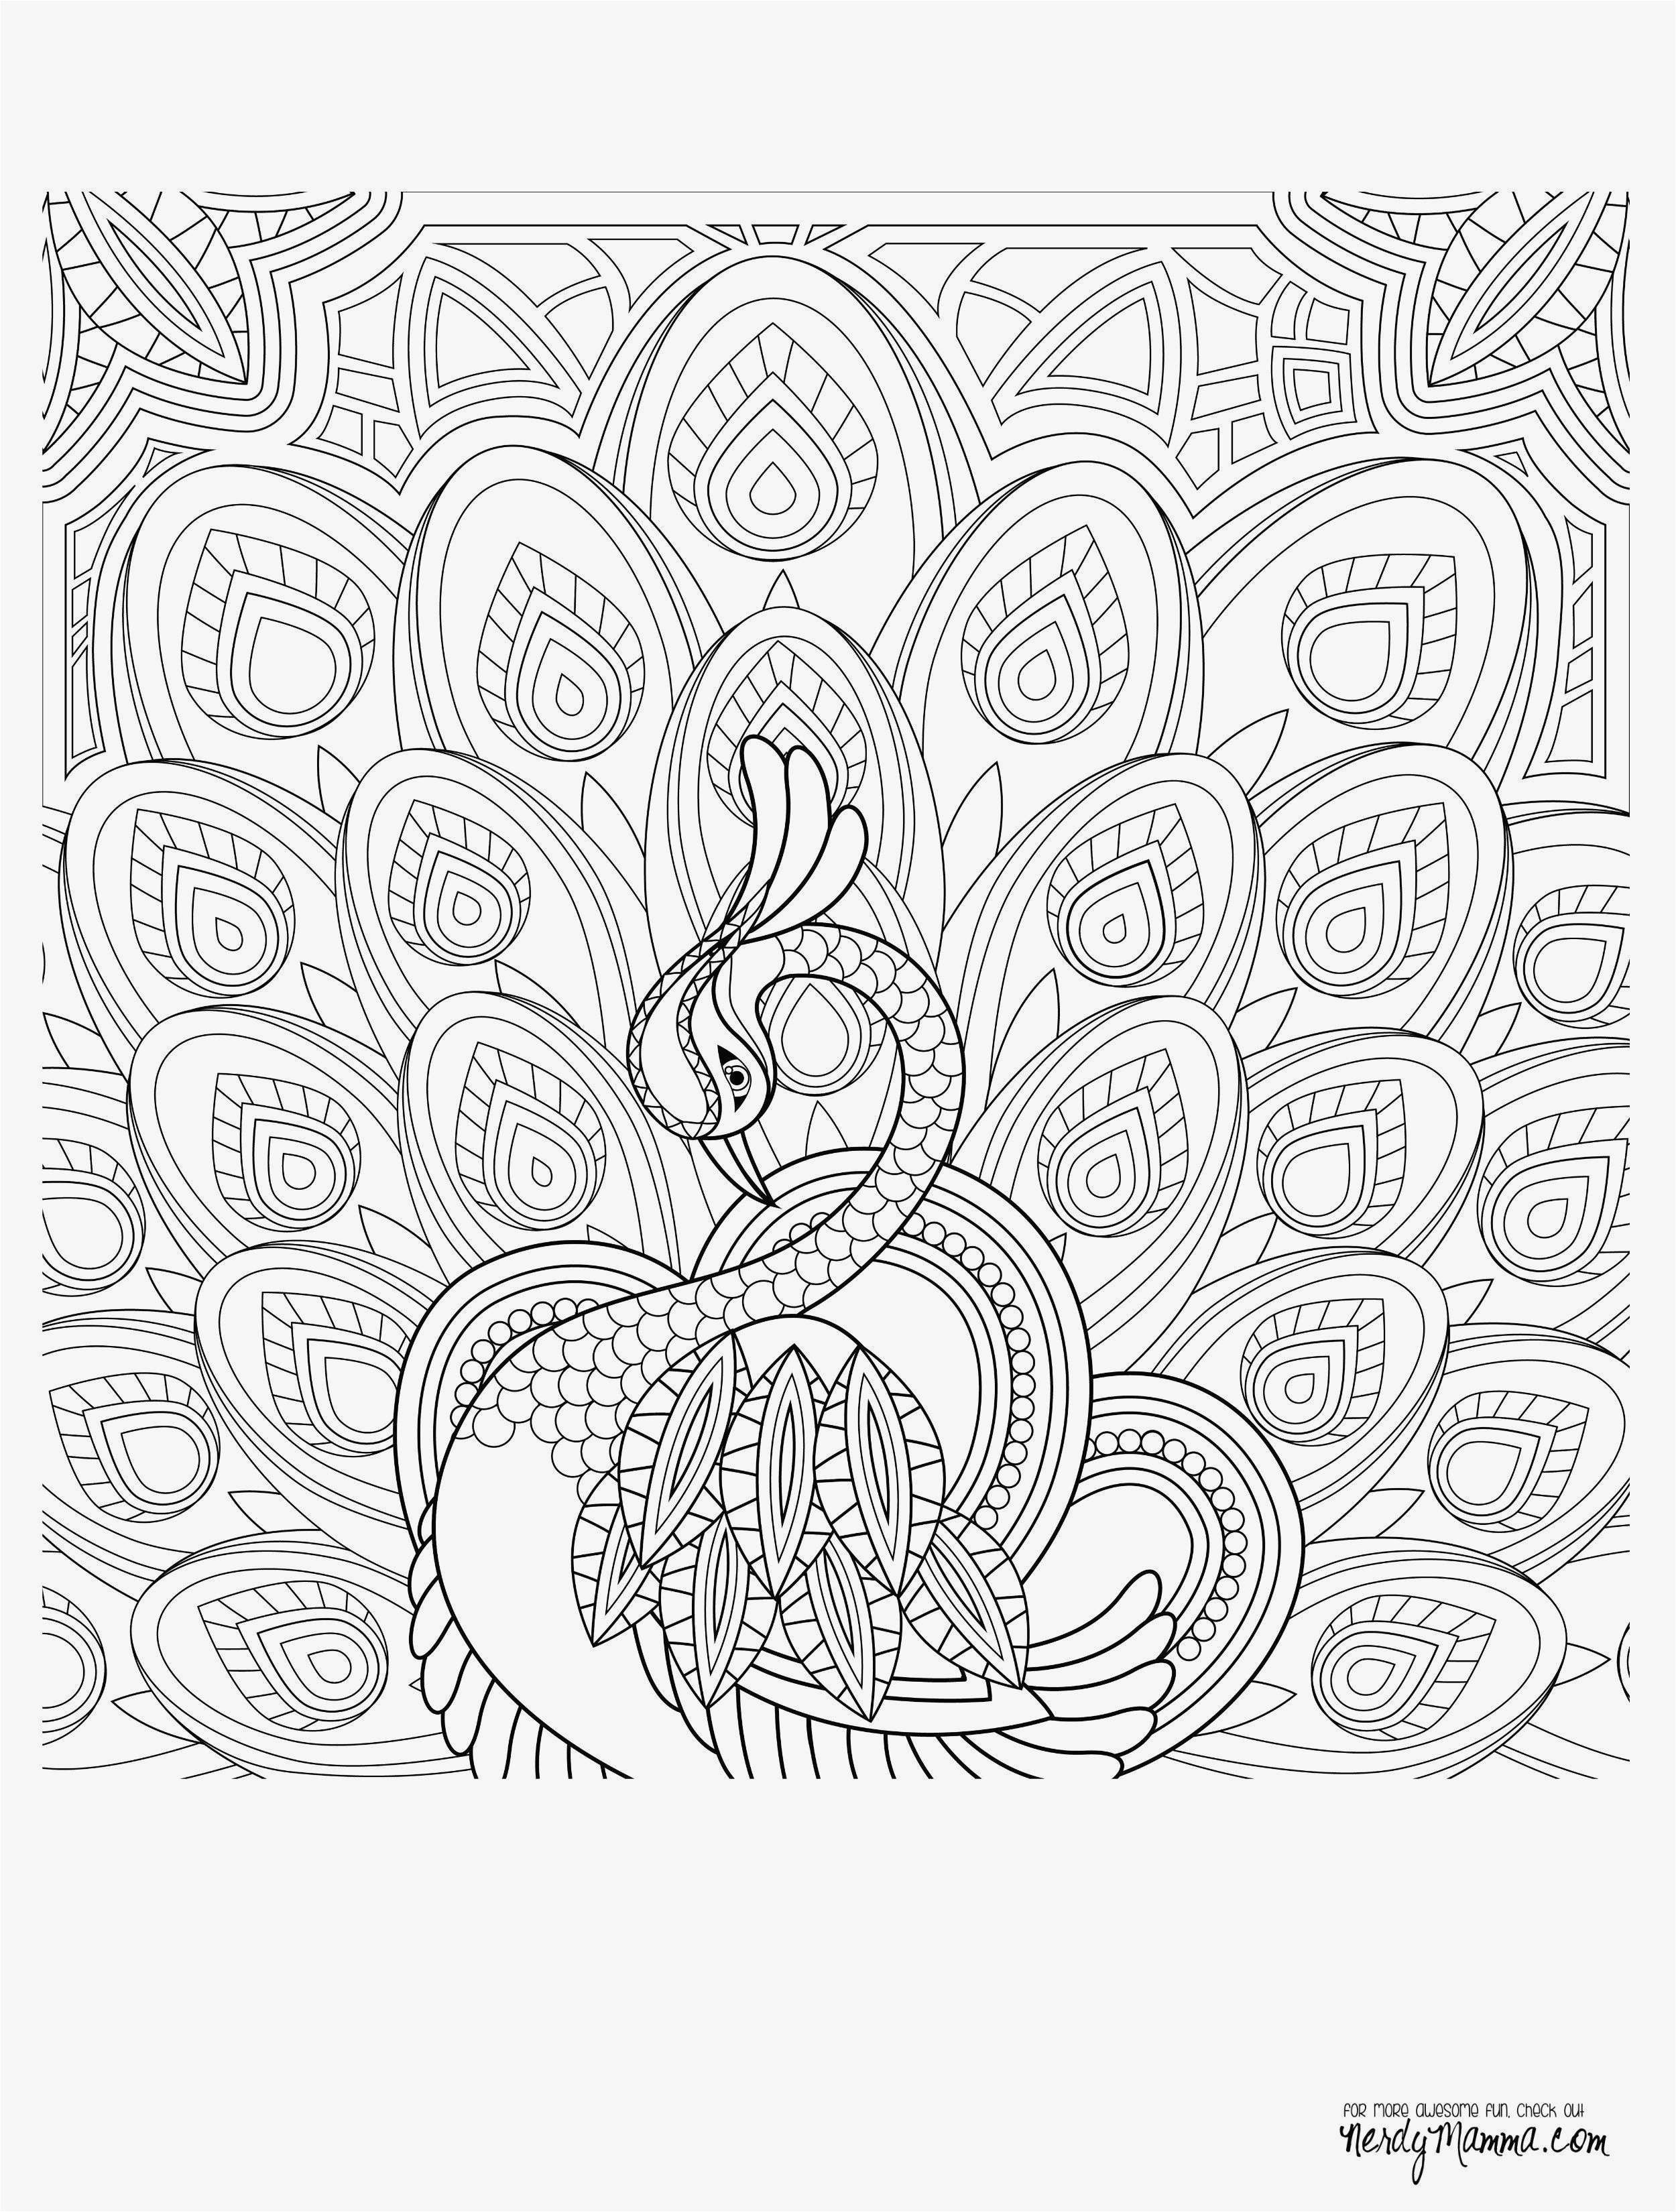 Hans Coloring Pages  Gallery 19f - Free For kids